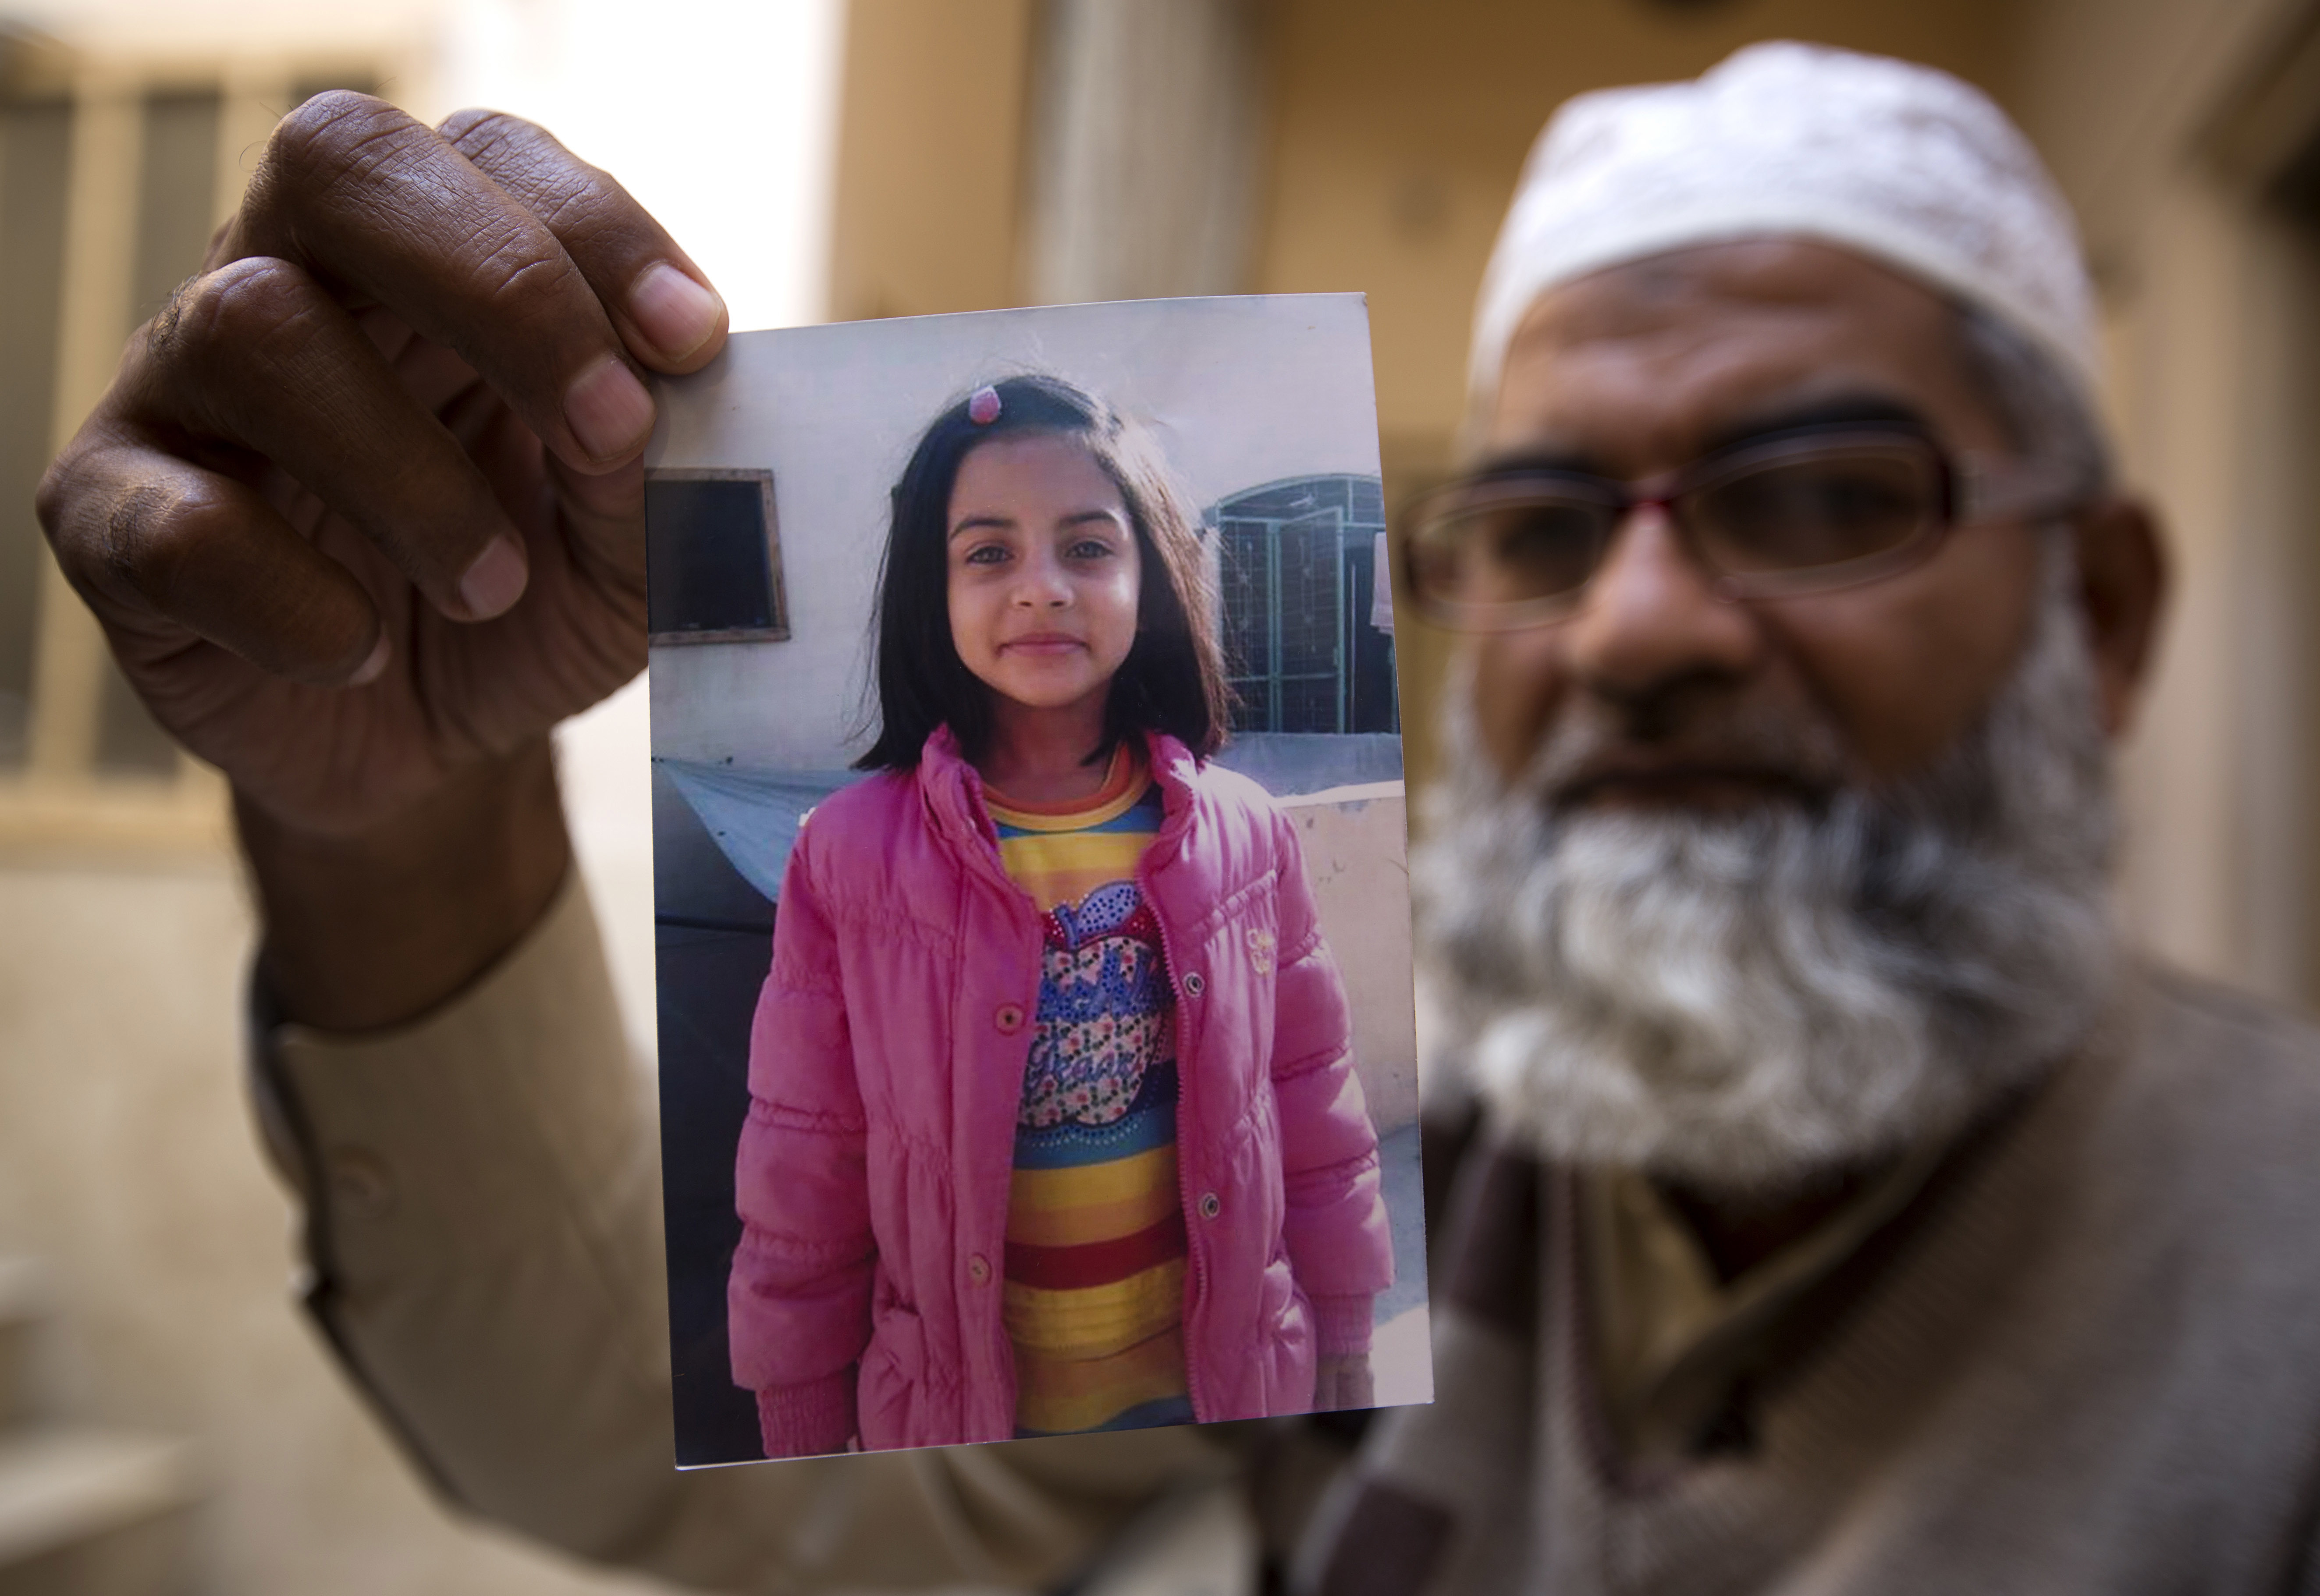 Mohammed Amin shows a picture of his daughter. Credit: PA